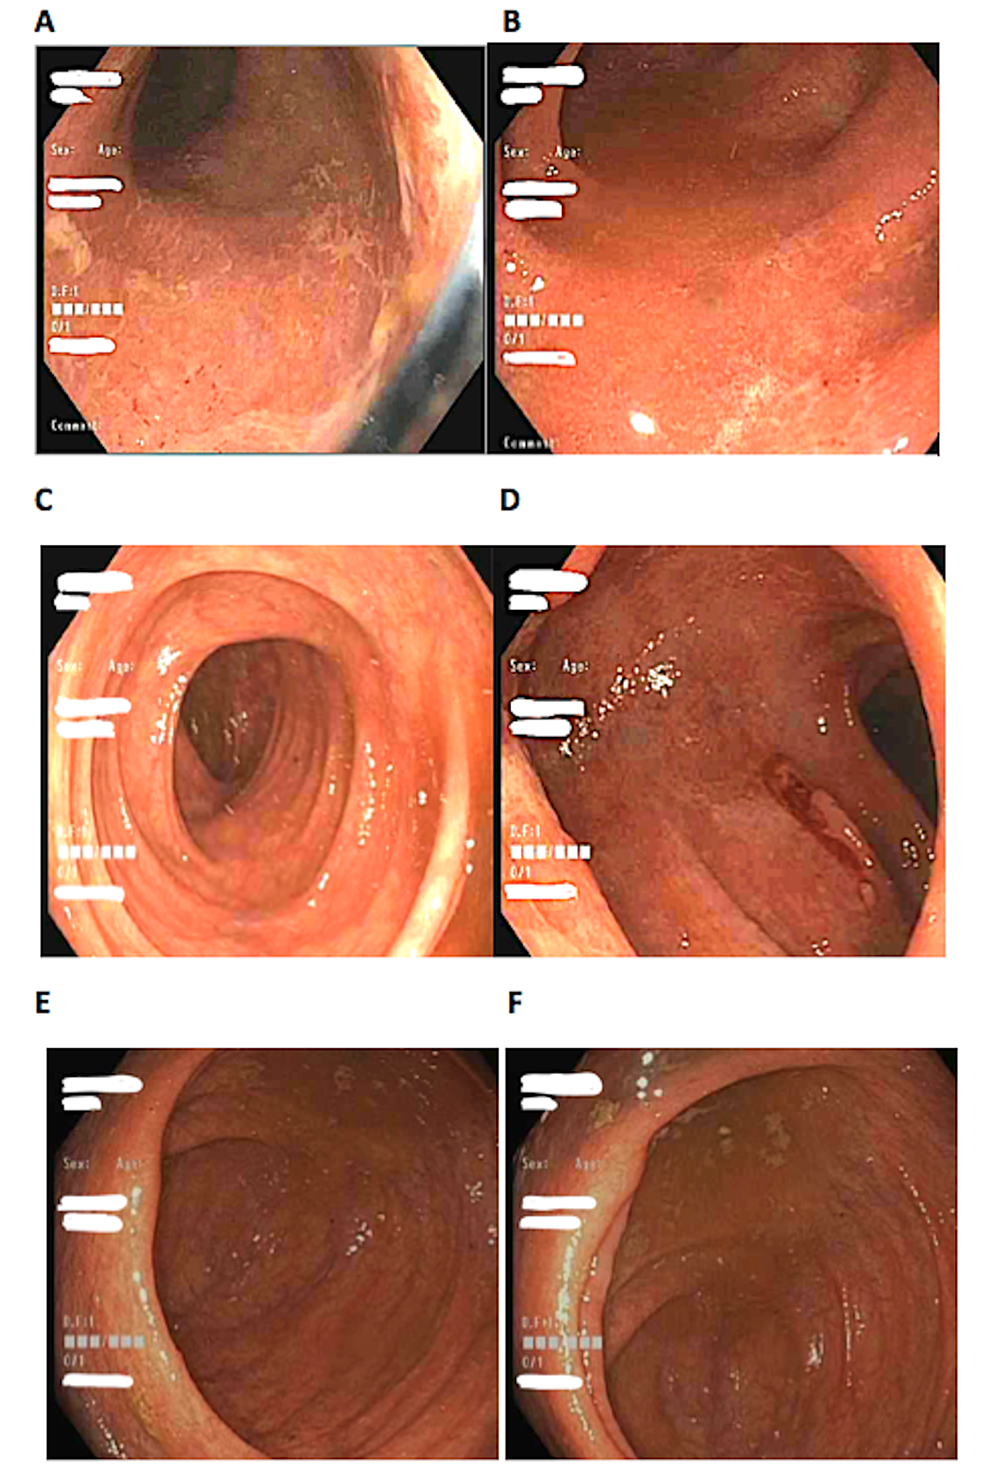 Image-A-F-showing-diffuse-patchy-erythema-from-the-rectum-to-the-ileocecal-valve.-Image-A,-rectum.-Image-B,-sigmoid-colon.-Image-C,-ascending-colon.-Image-D,-transverse-colon.-Image-E,-cecum.-Image-F,-ileocecal-valve